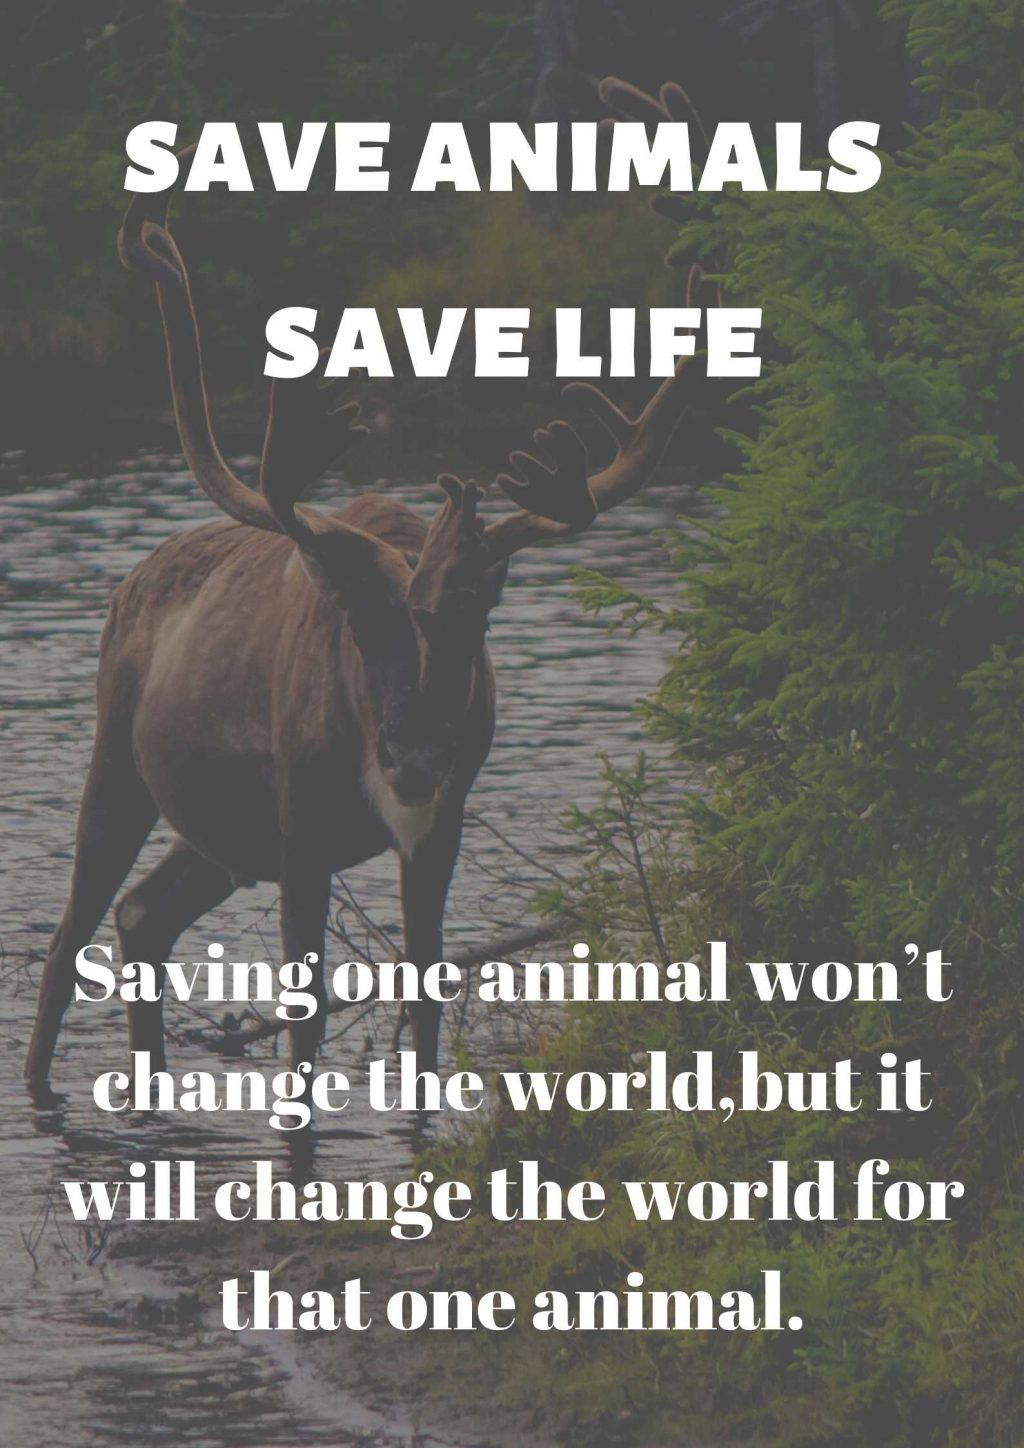 poster for save animals